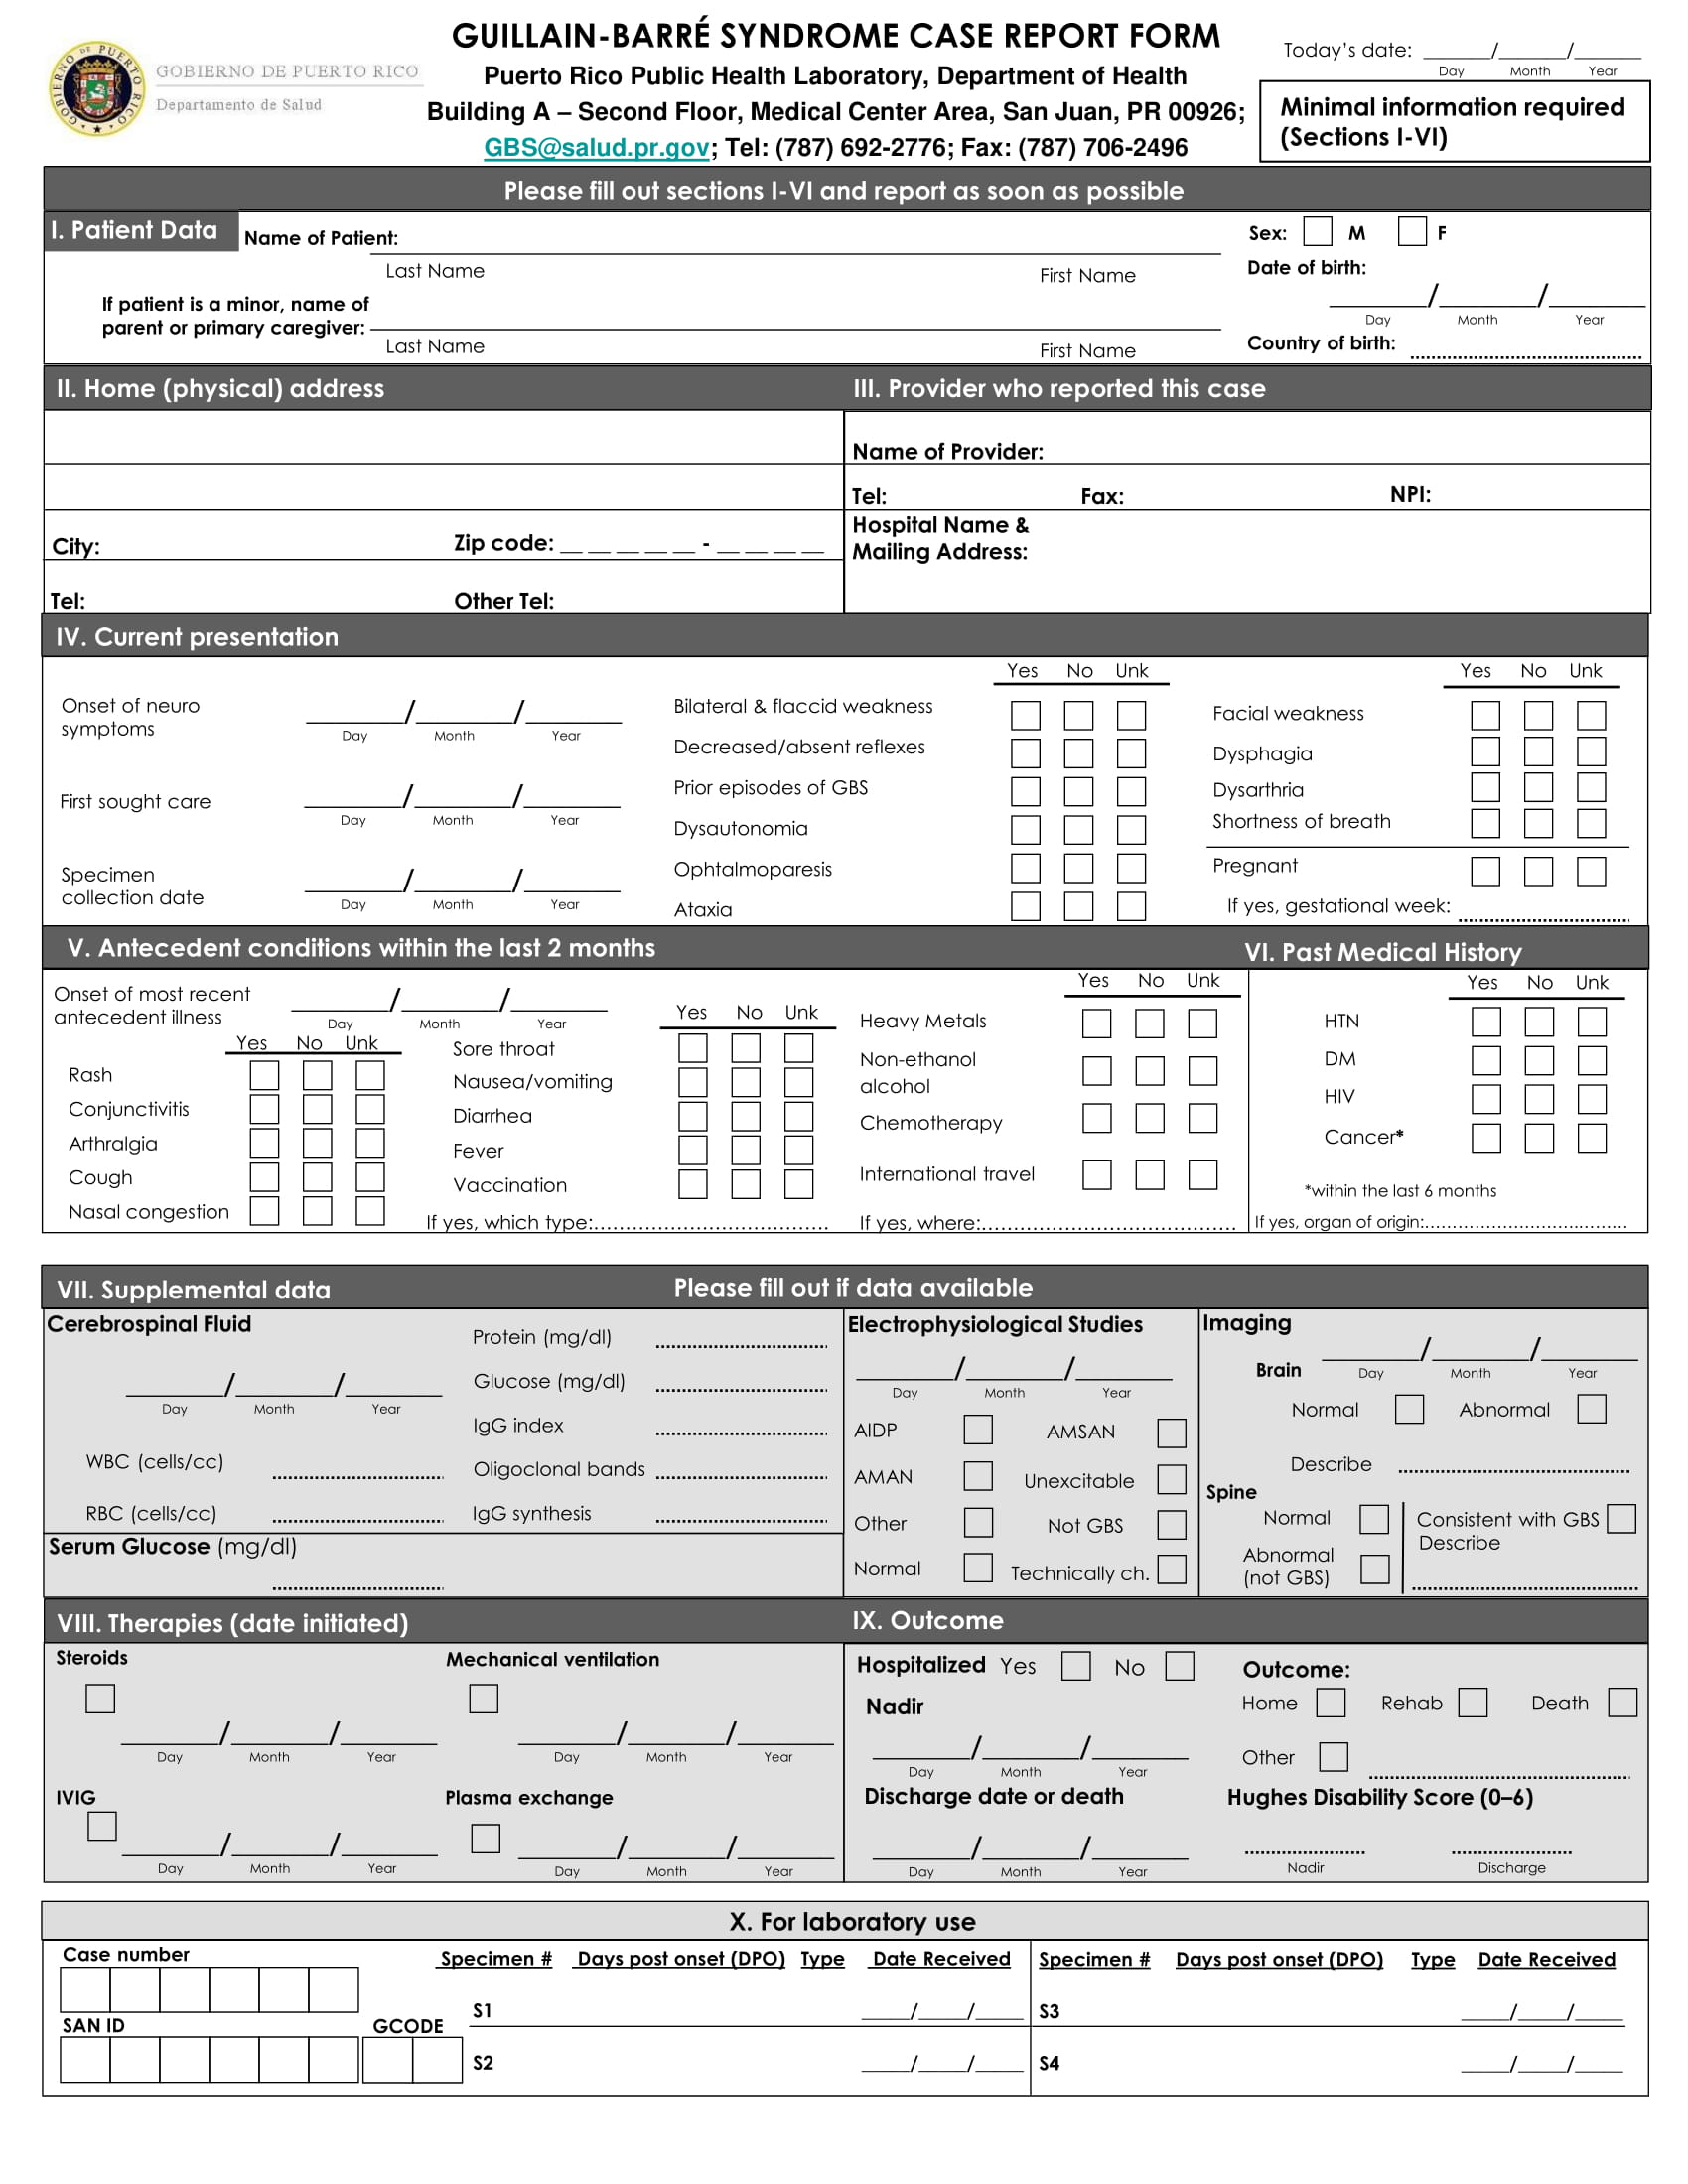 syndrome case report form 1